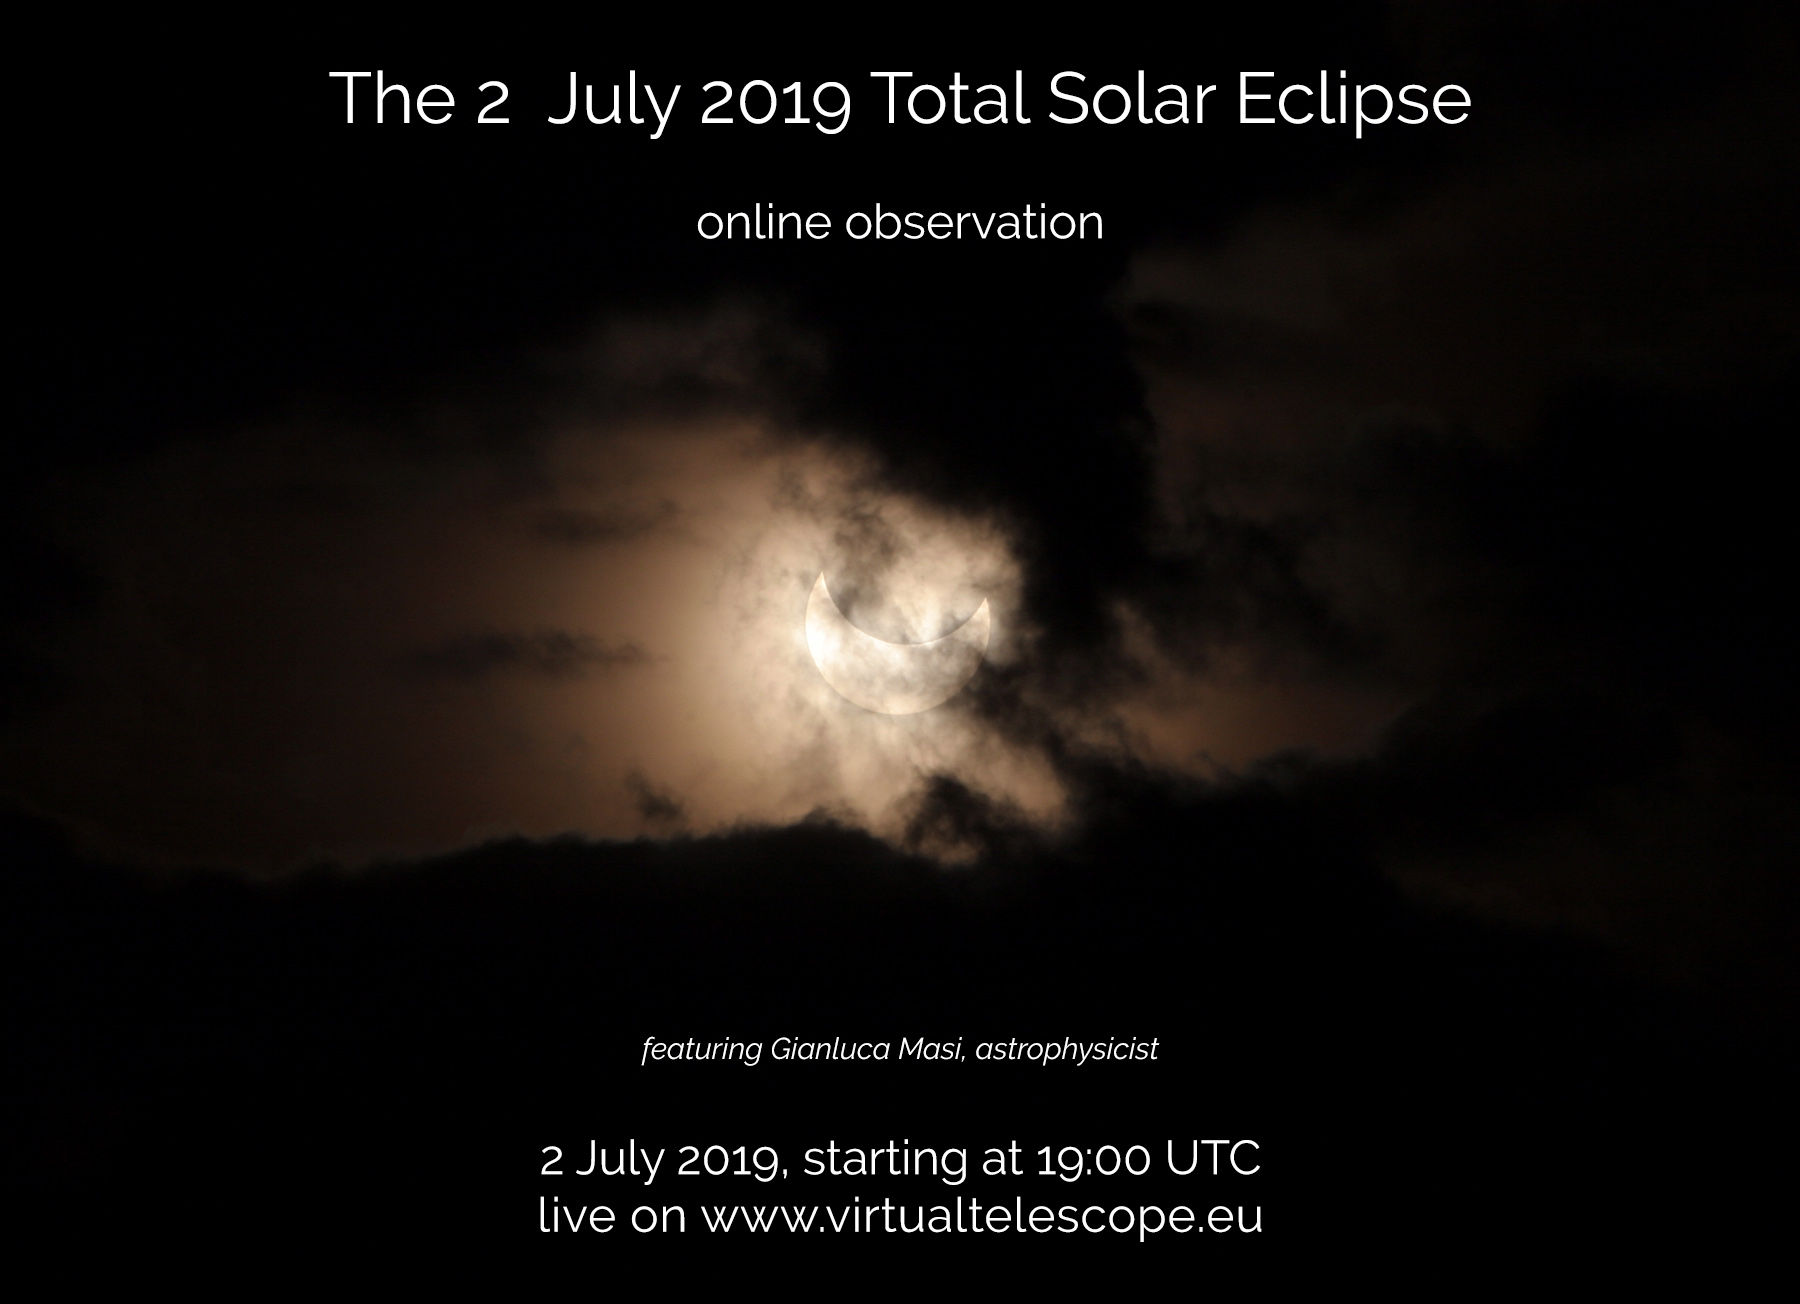 The 2 July 2019 total solar eclipse: poster of the event